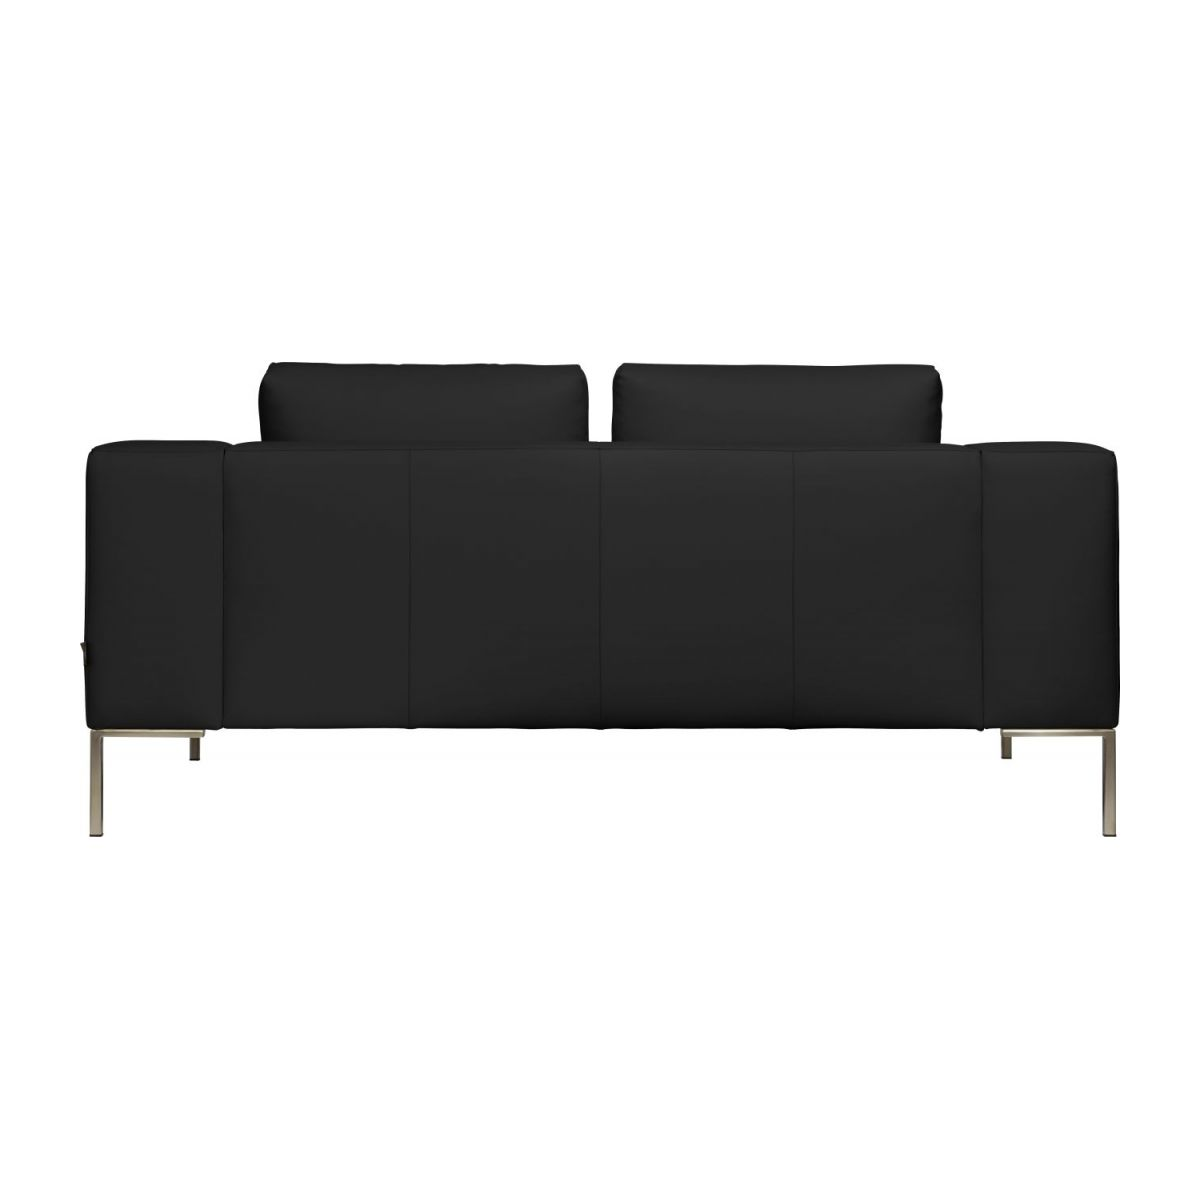 2 seater sofa in Eton veined leather, black n°5